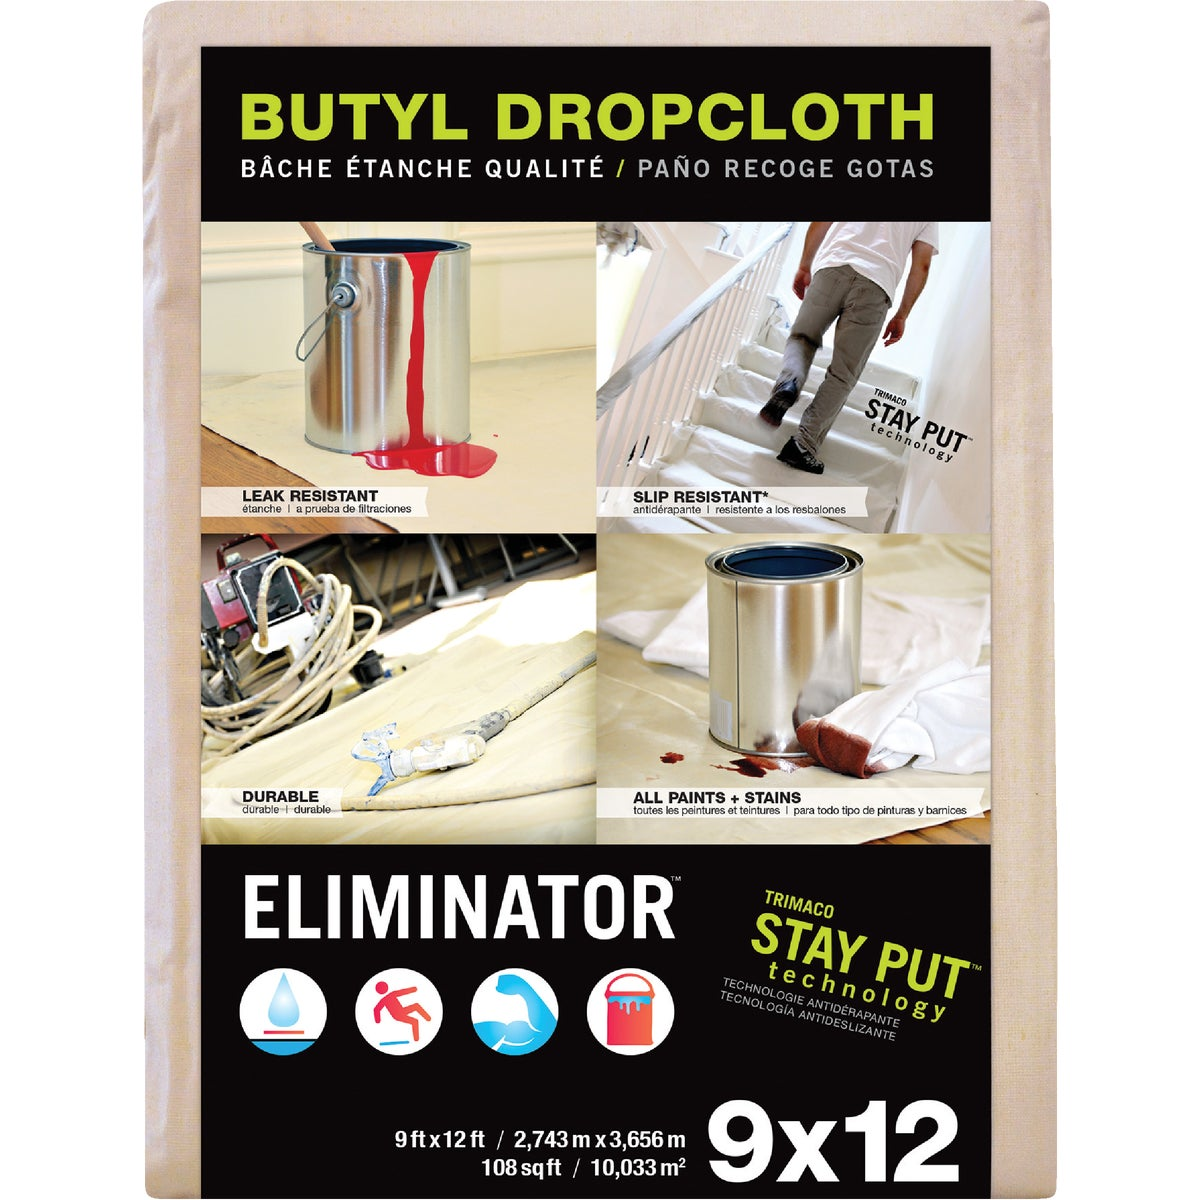 9X12 BUTYL DROP CLOTH - 80321 by Trimaco L L C